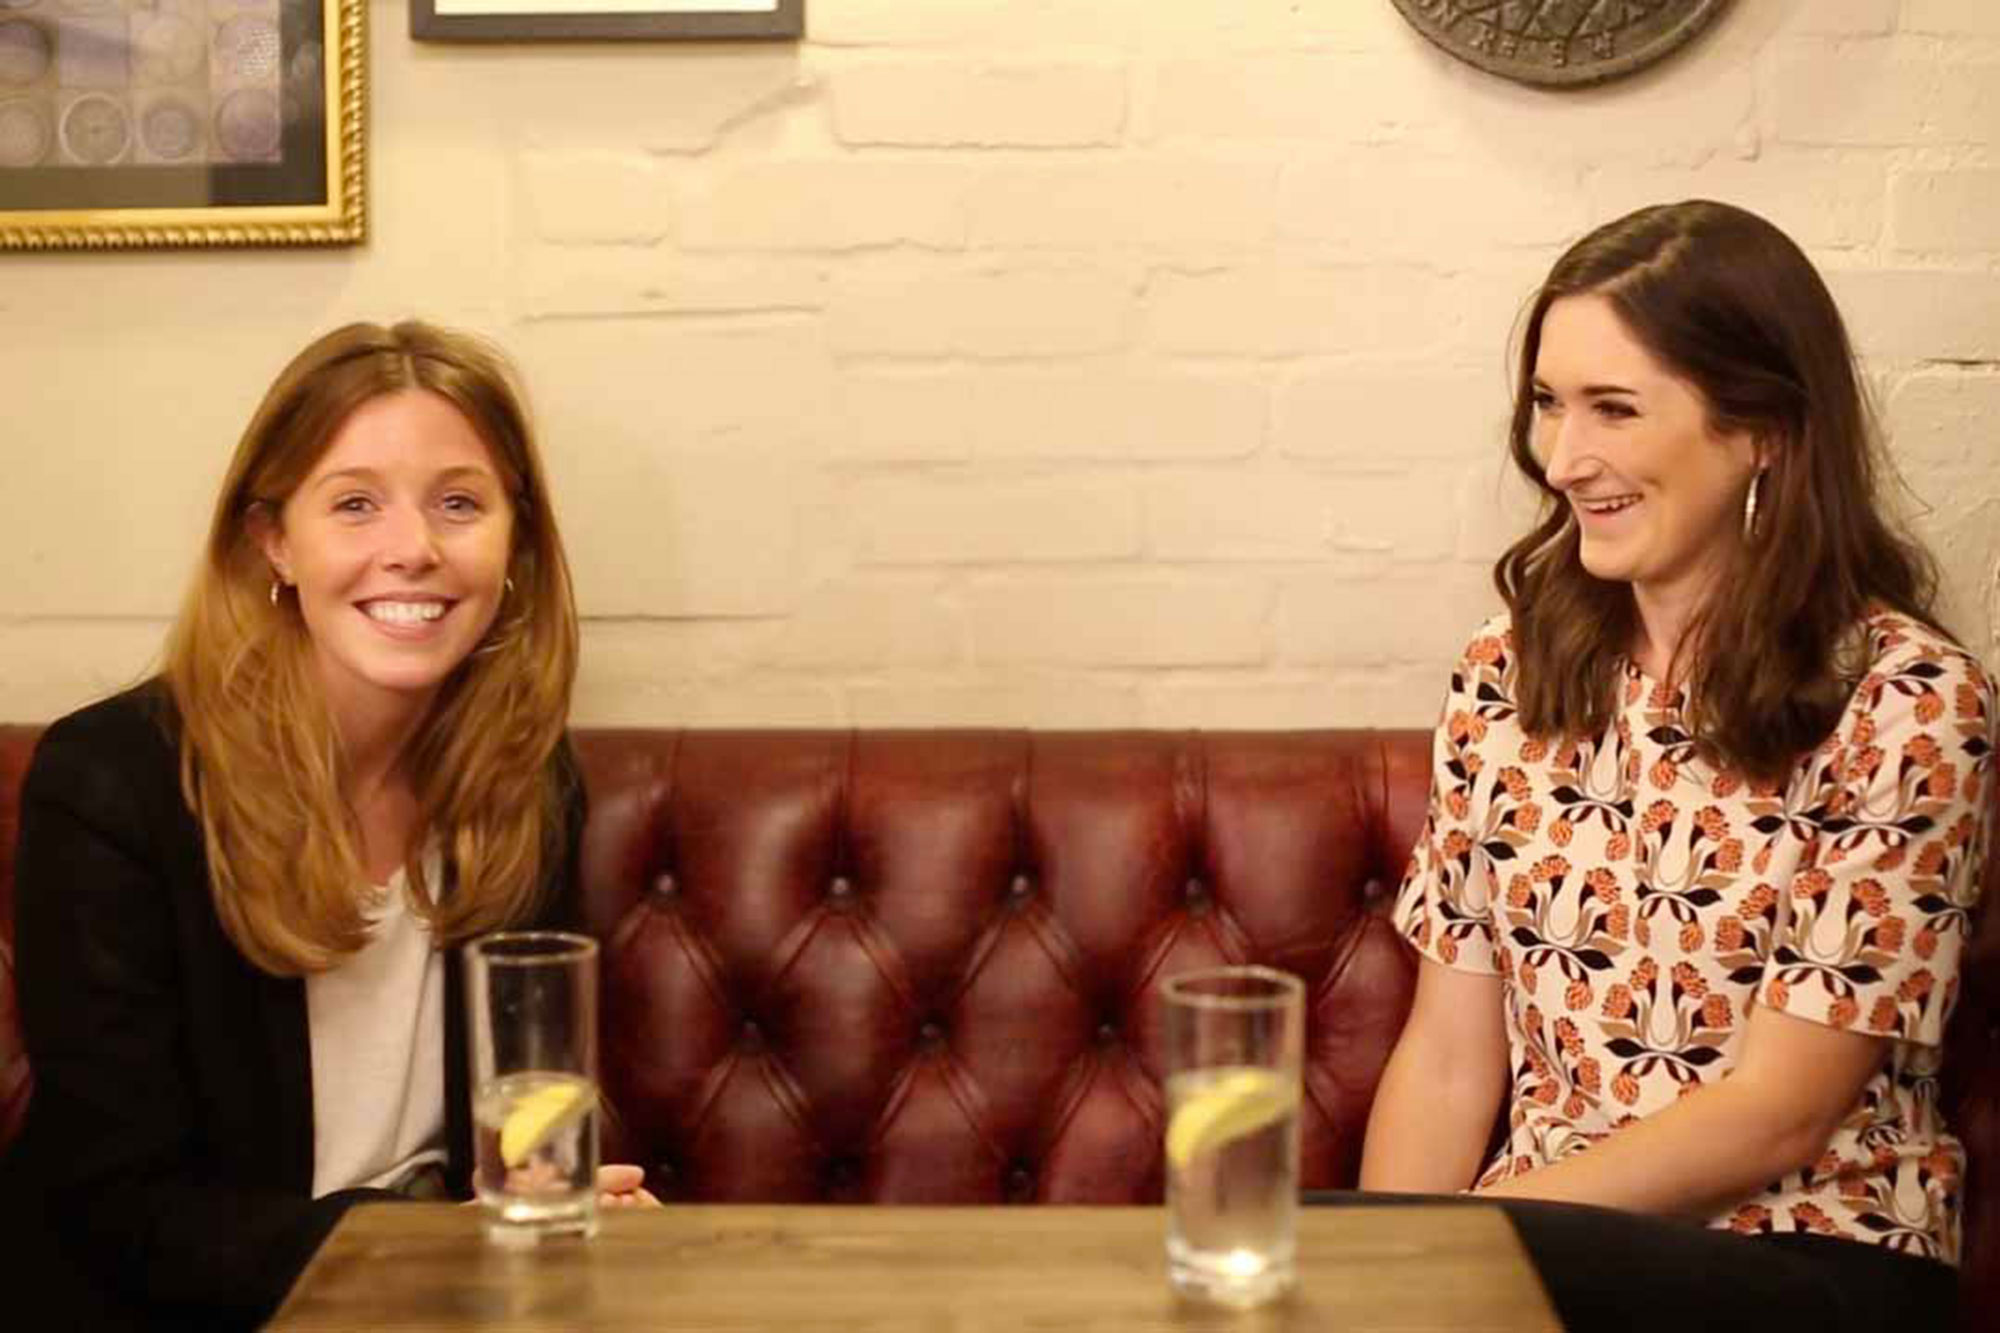 AN INTERVIEW WITH STACEY DOOLEY